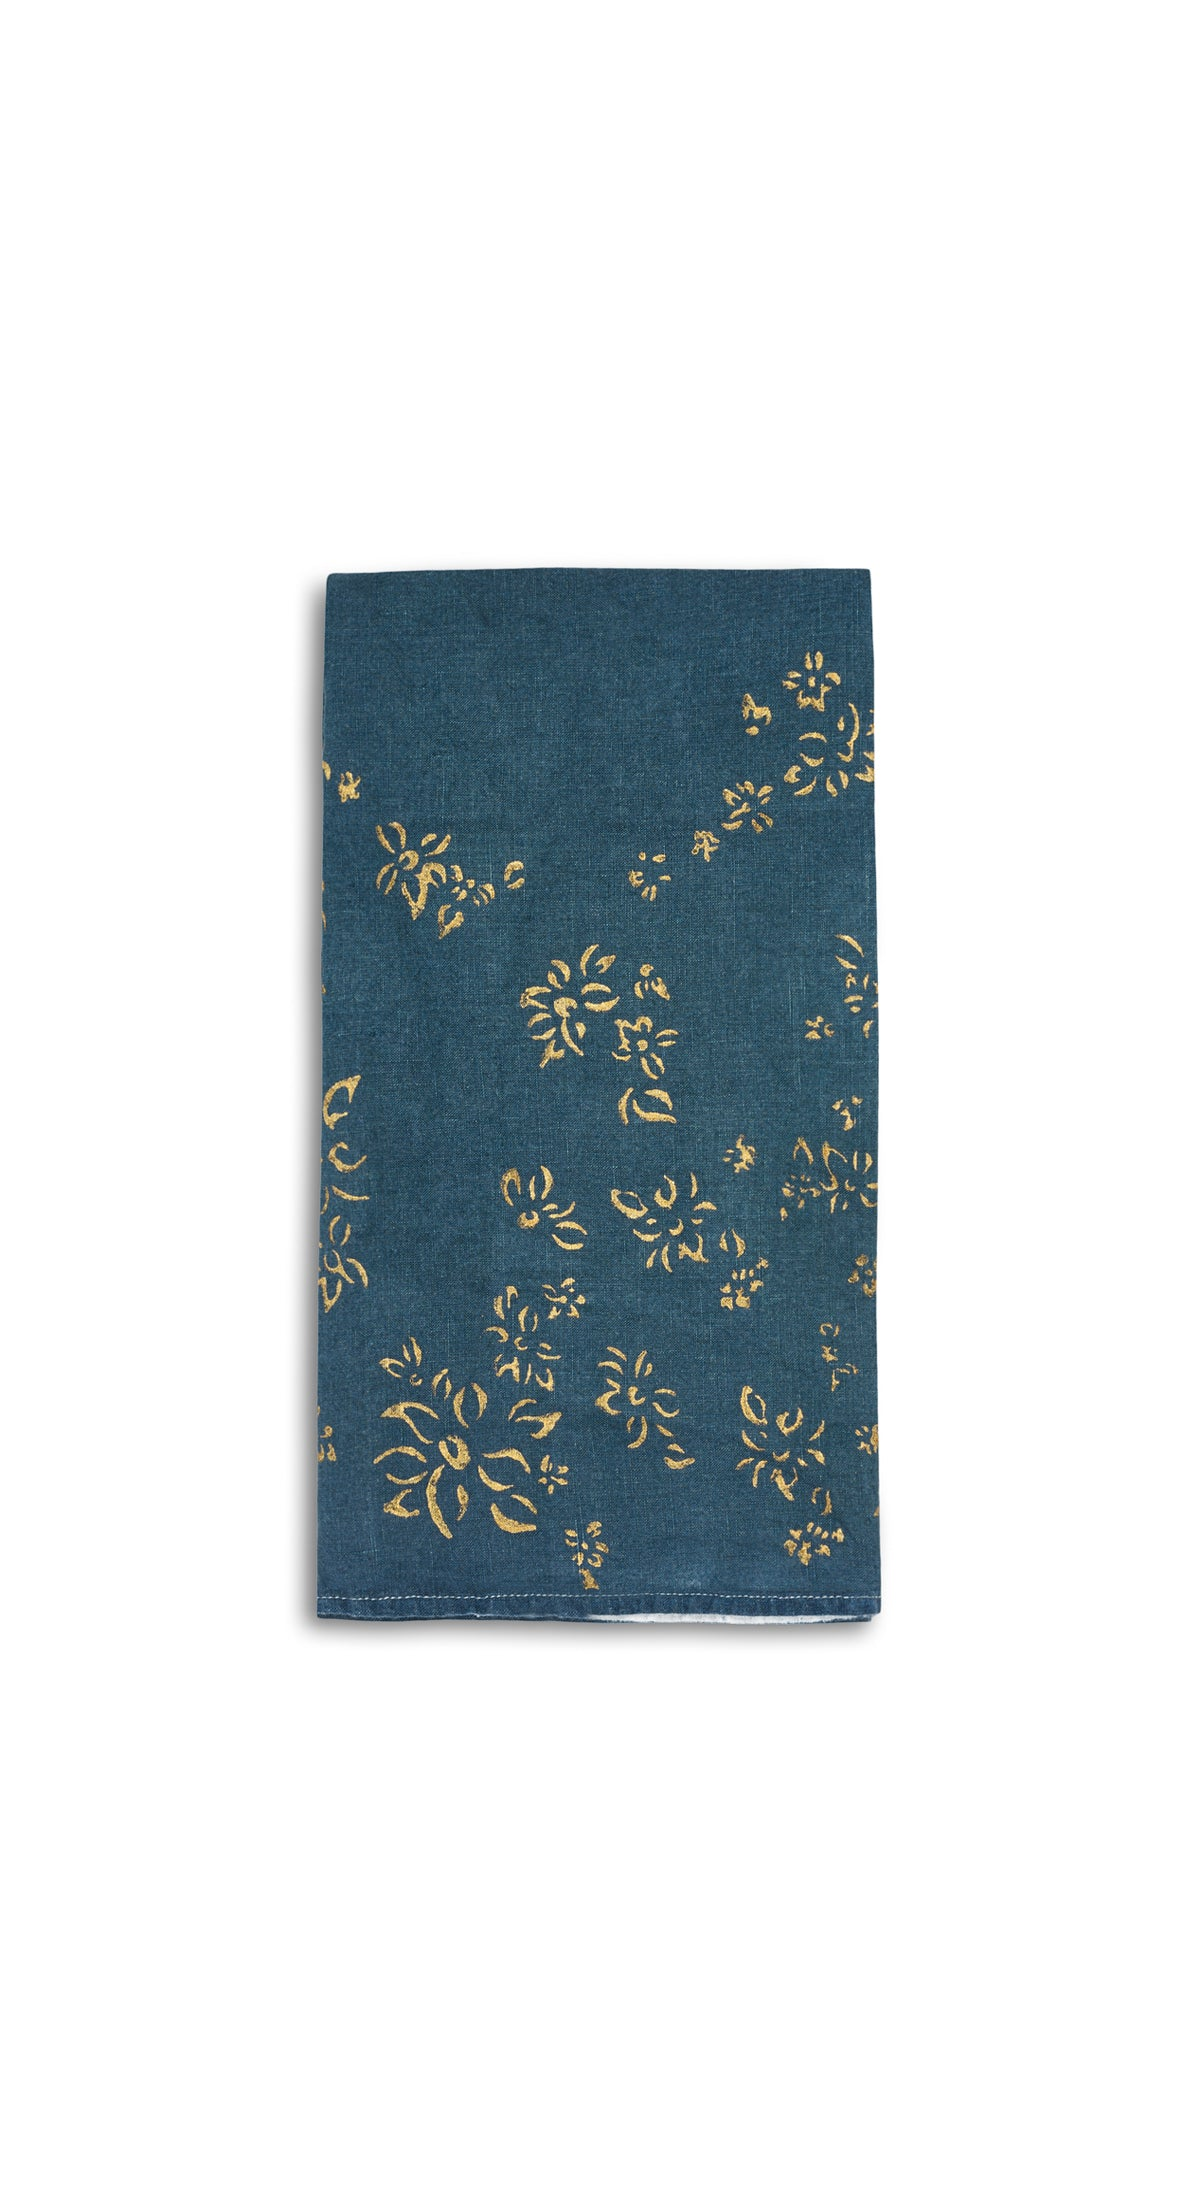 Bernadette's Hand Stamped Falling Flower On Full Field Linen Napkin in Deep Blue & Gold